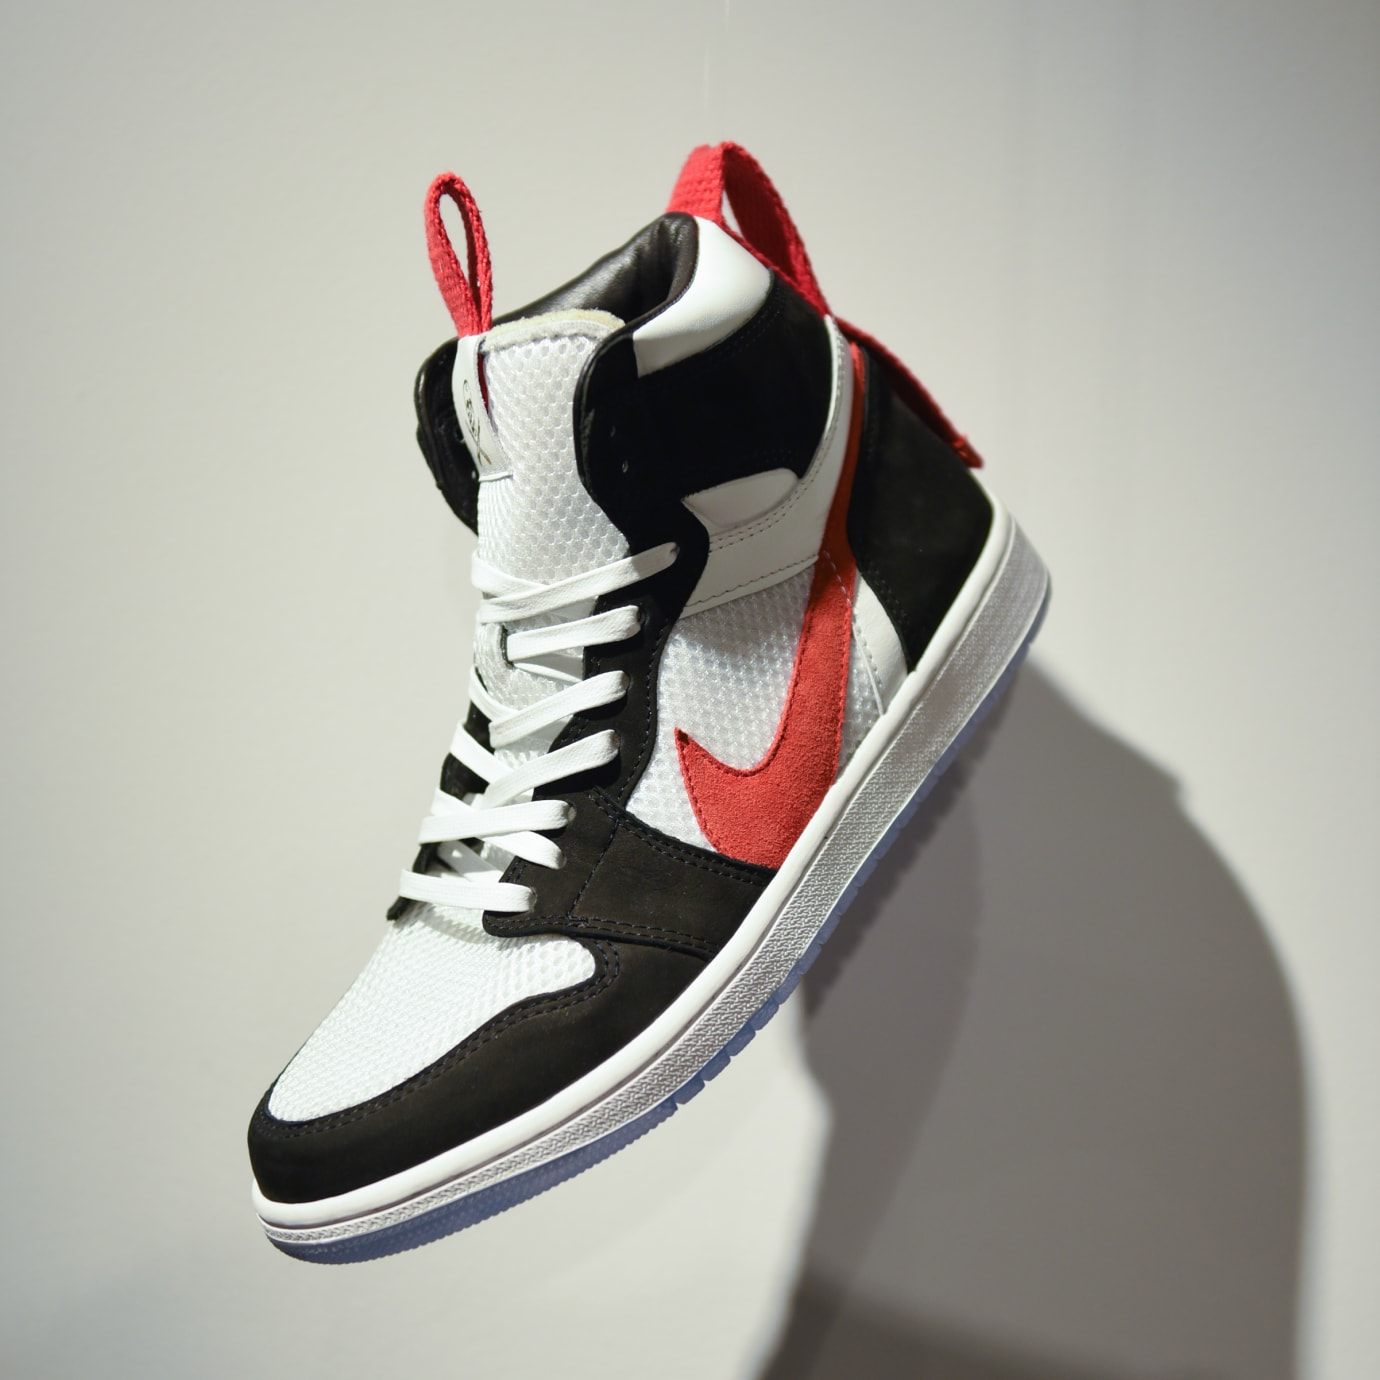 Shoe Surgeon Air Jordan 1 x Mars Yard Release Date